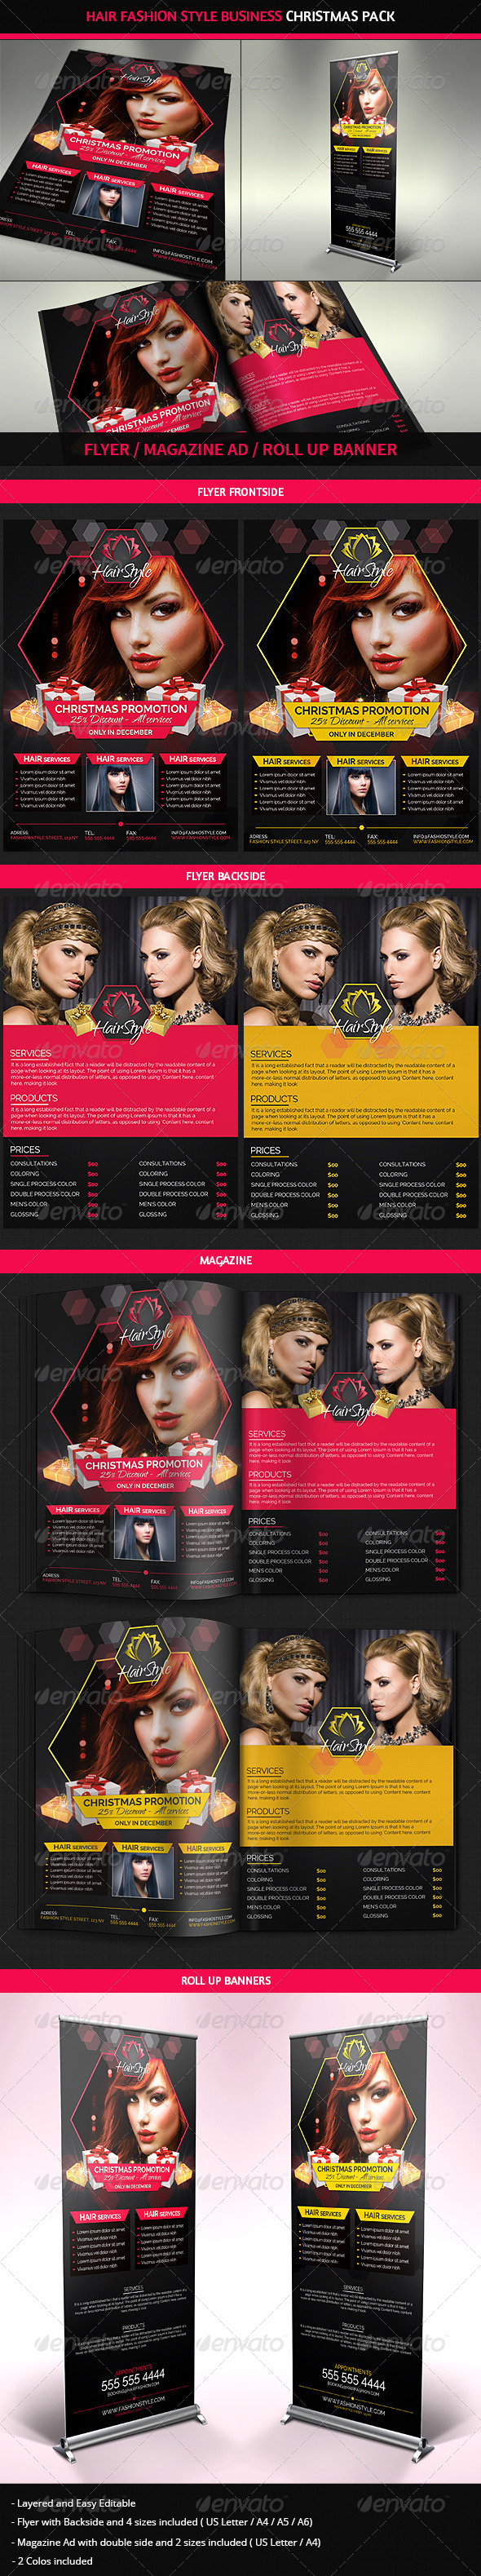 Hair Salon Fashion Christmas Advertising Pack Graphicriver